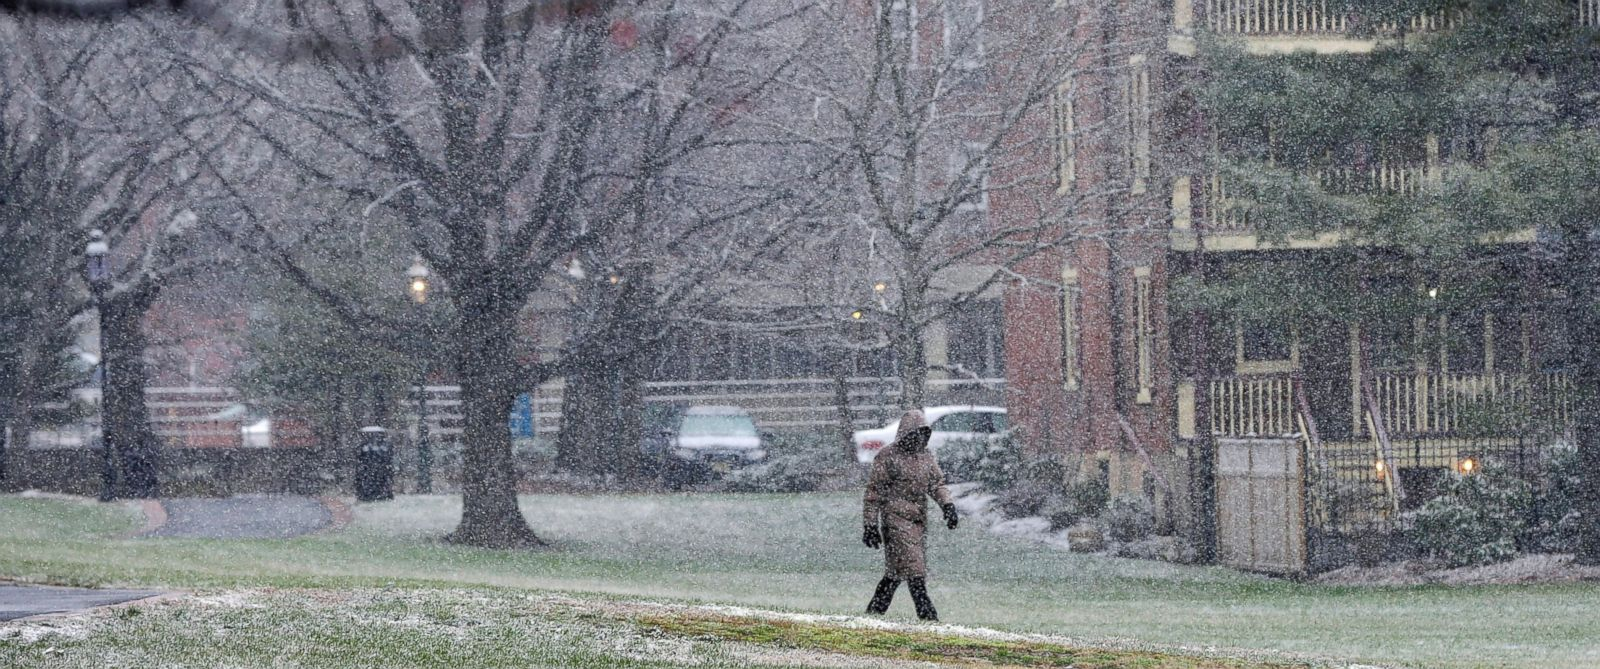 PHOTO: A person walks through a park in the falling snow on Jan. 17, 2016, in Trenton, N.J.